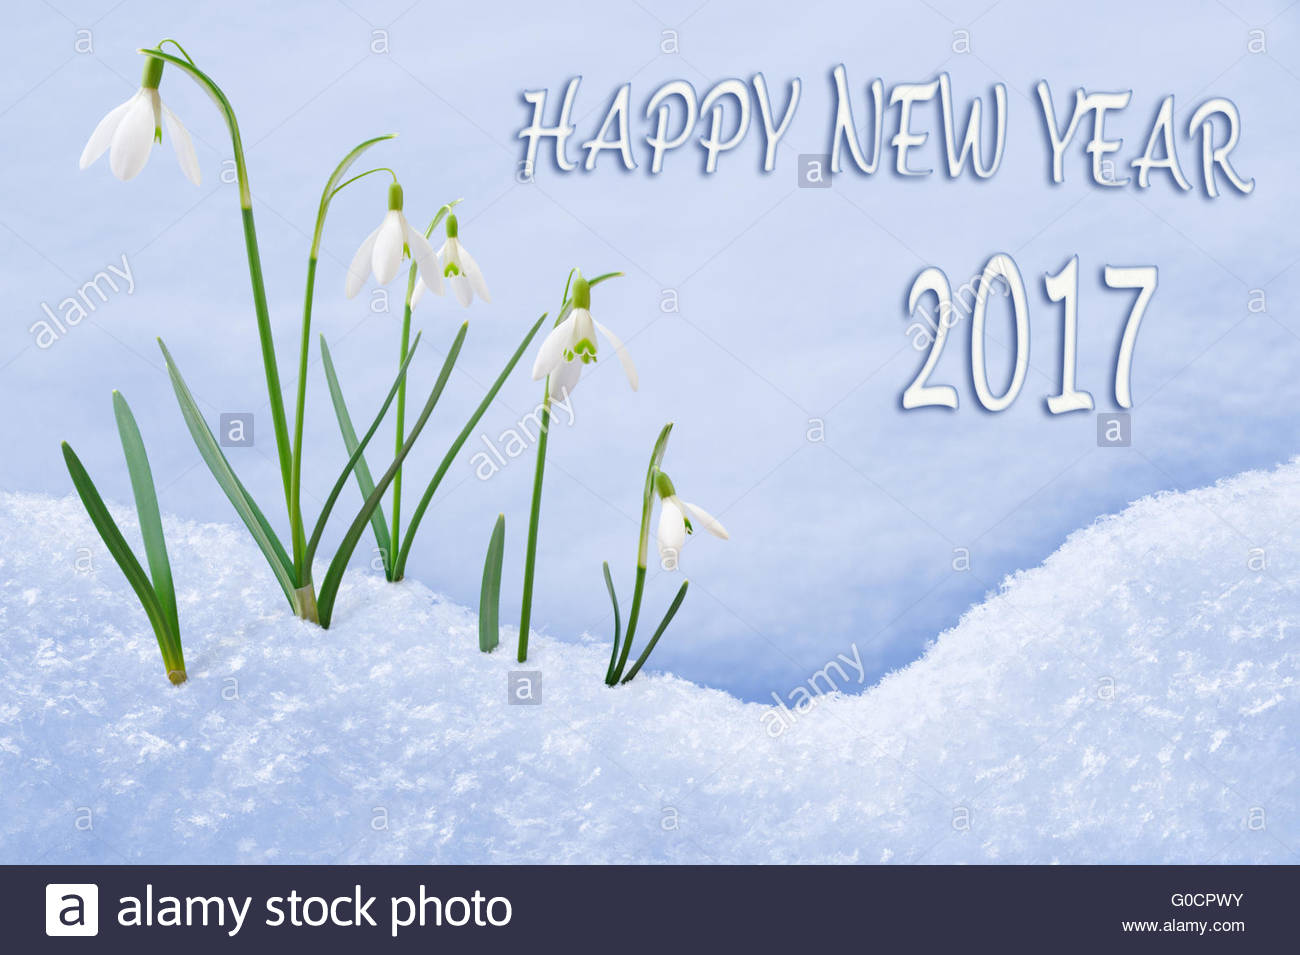 New Year 2017 Greeting Card Group Of Snowdrops Happy New Year Text